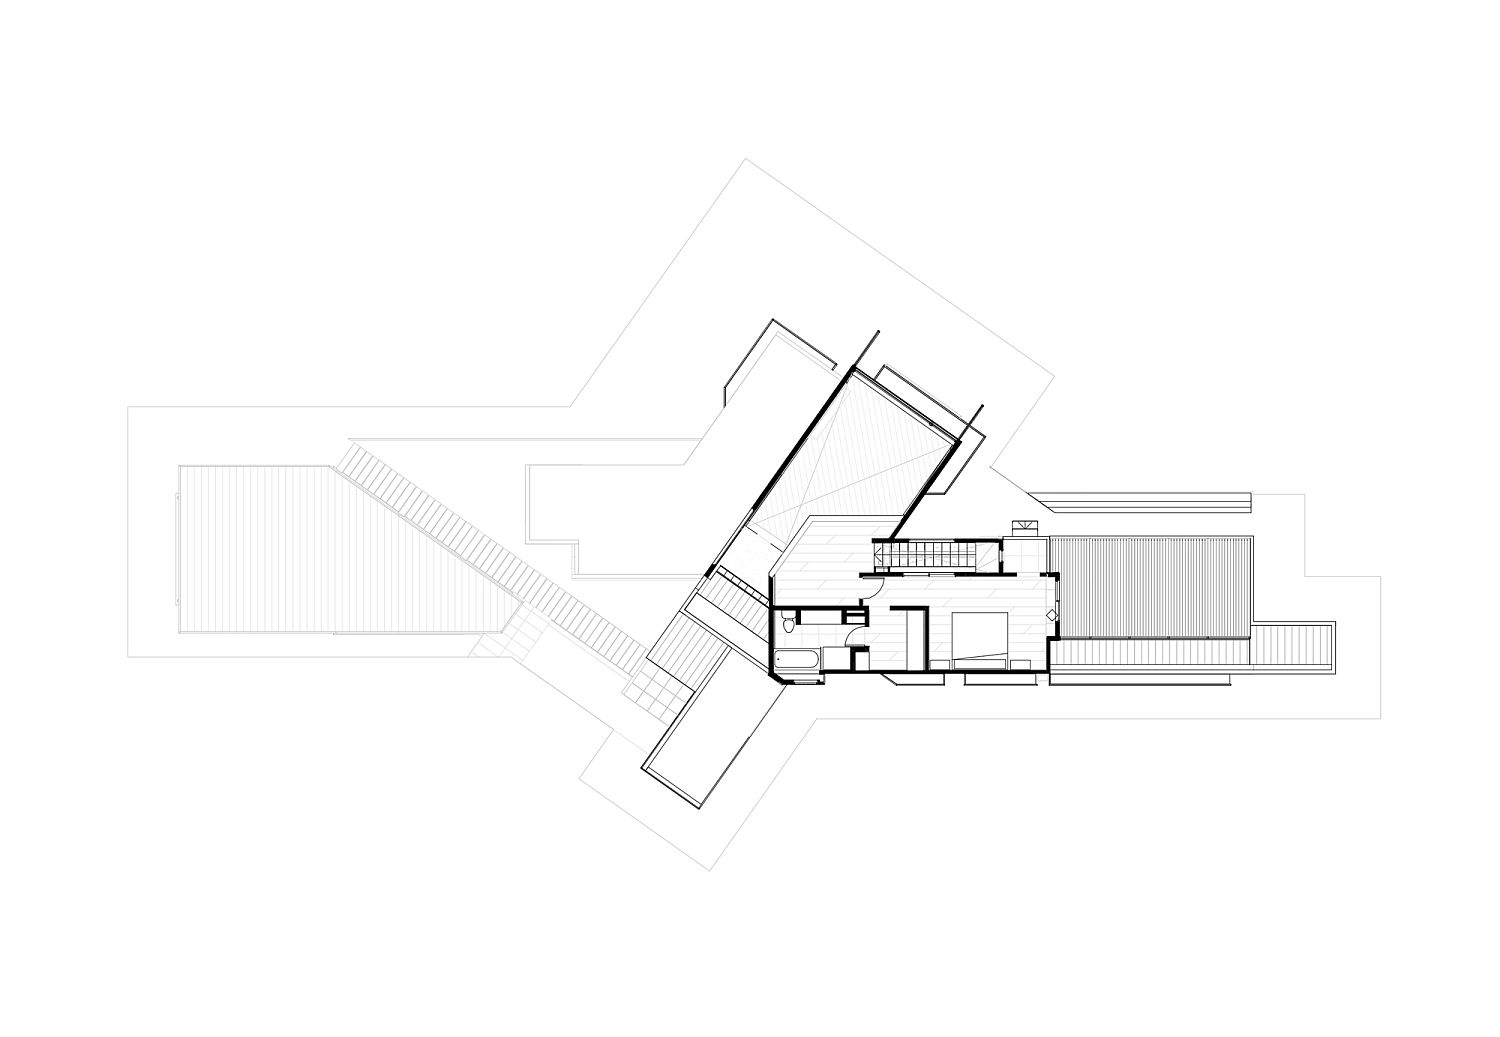 First floor plan of Passalacqua Lahsen House